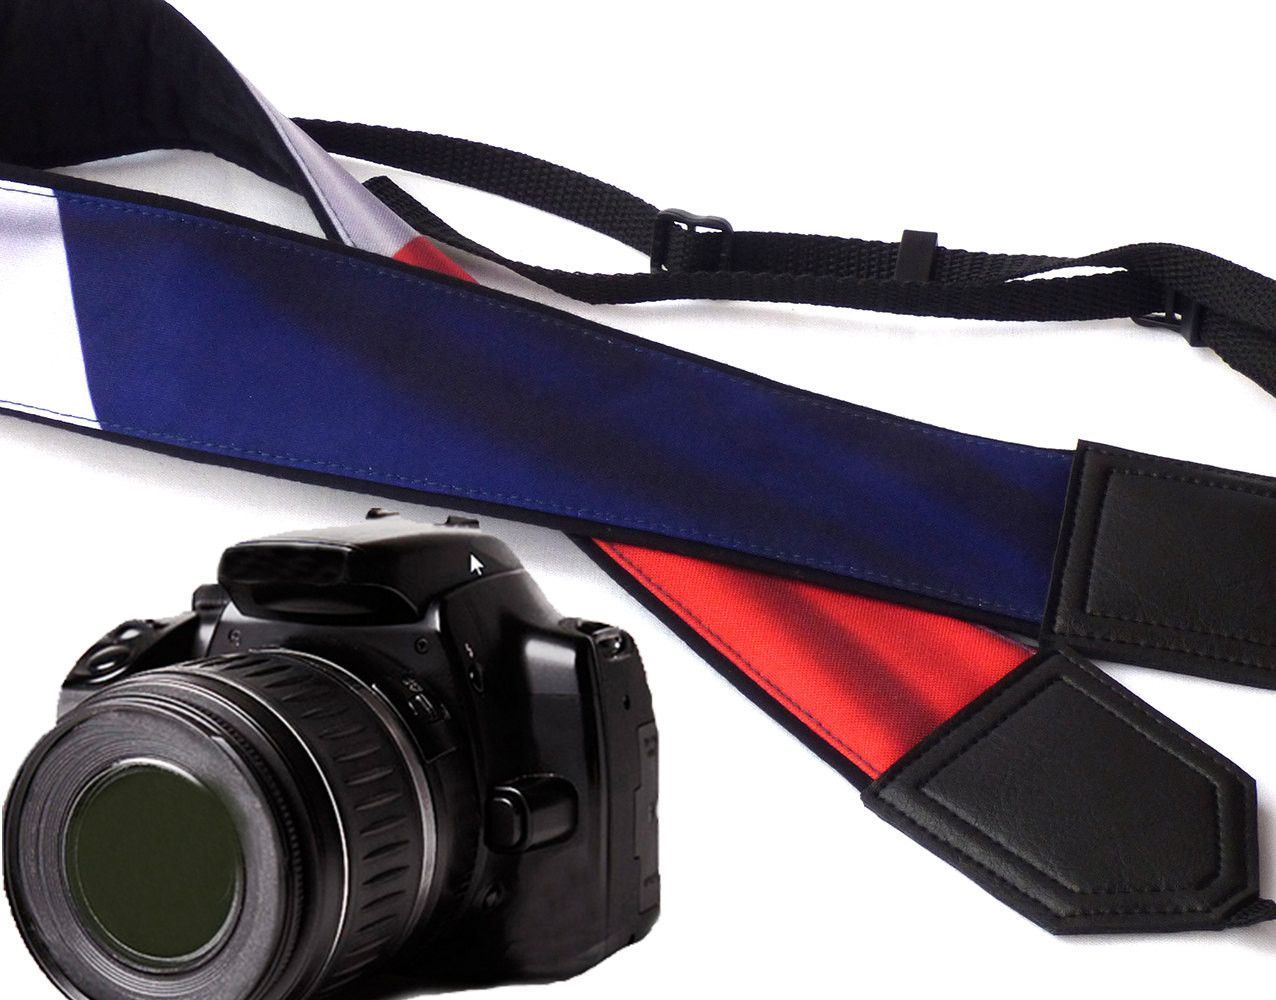 French flag camera strap. France. Blue, white, red DSLR / SLR Camera Strap. Camera accessories by InTePro